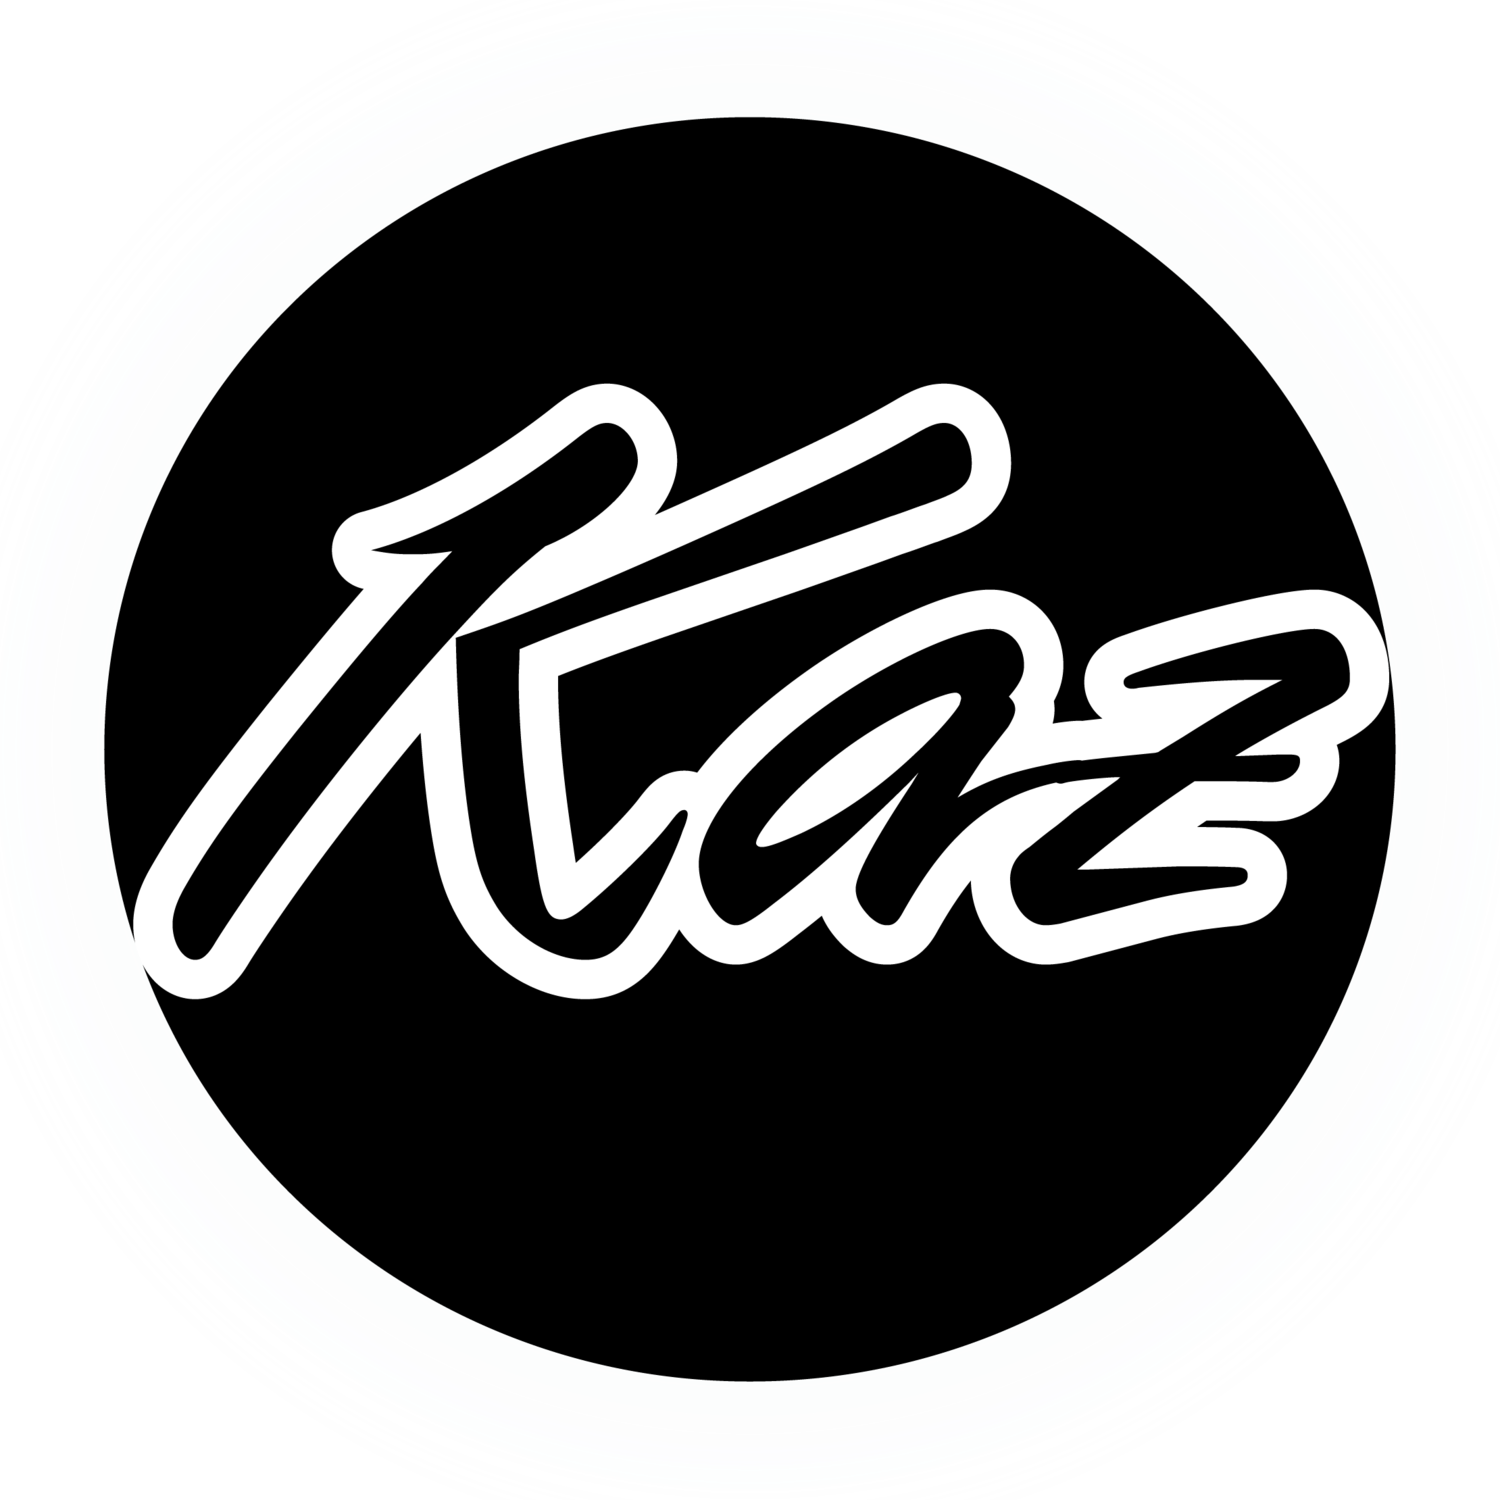 Kaz Grala - Official Website